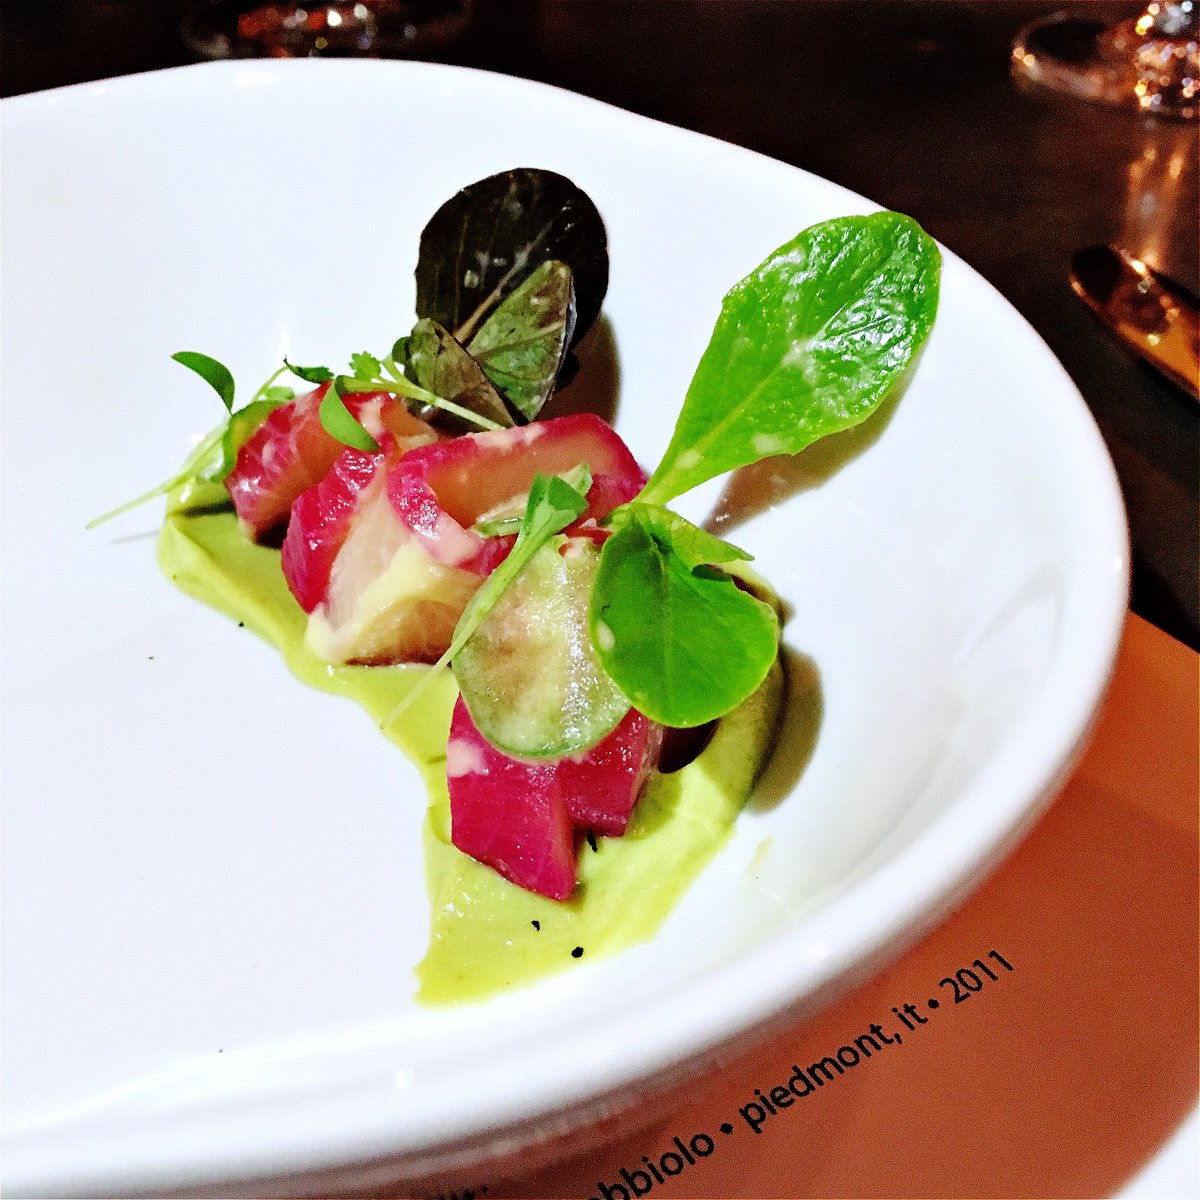 Nevin Martell On Twitter Stellar Start Beet Cured Hamachi On Avocado Pistachio Puree By Chefkwame Ripplewdc Https T Co Nefsic8glg